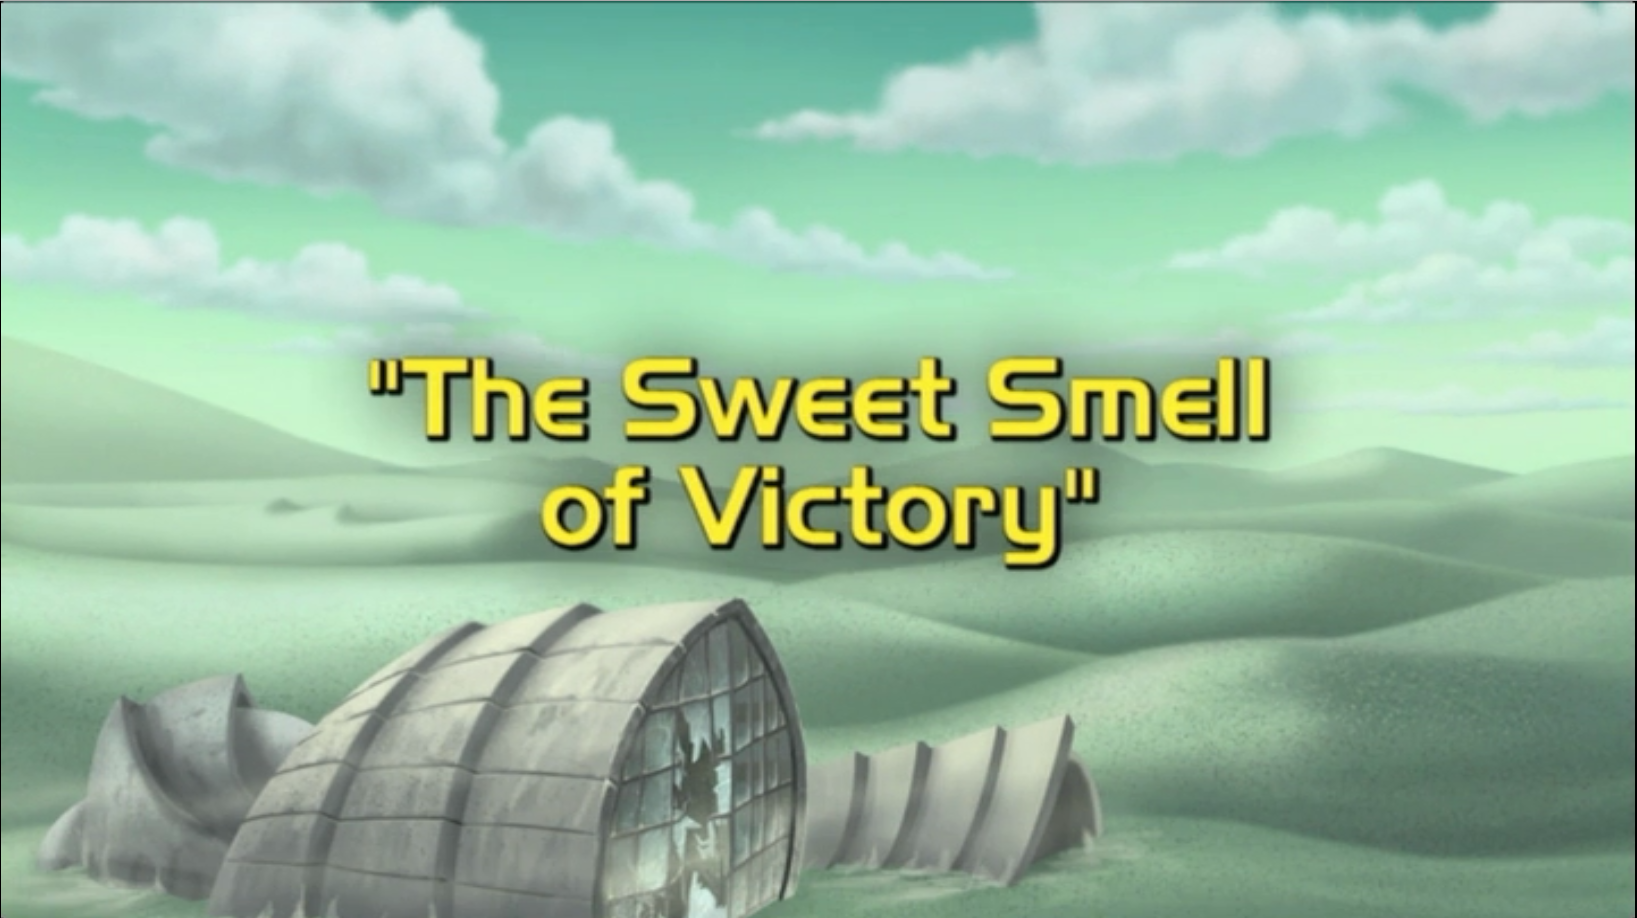 The Sweet Smell of Victory